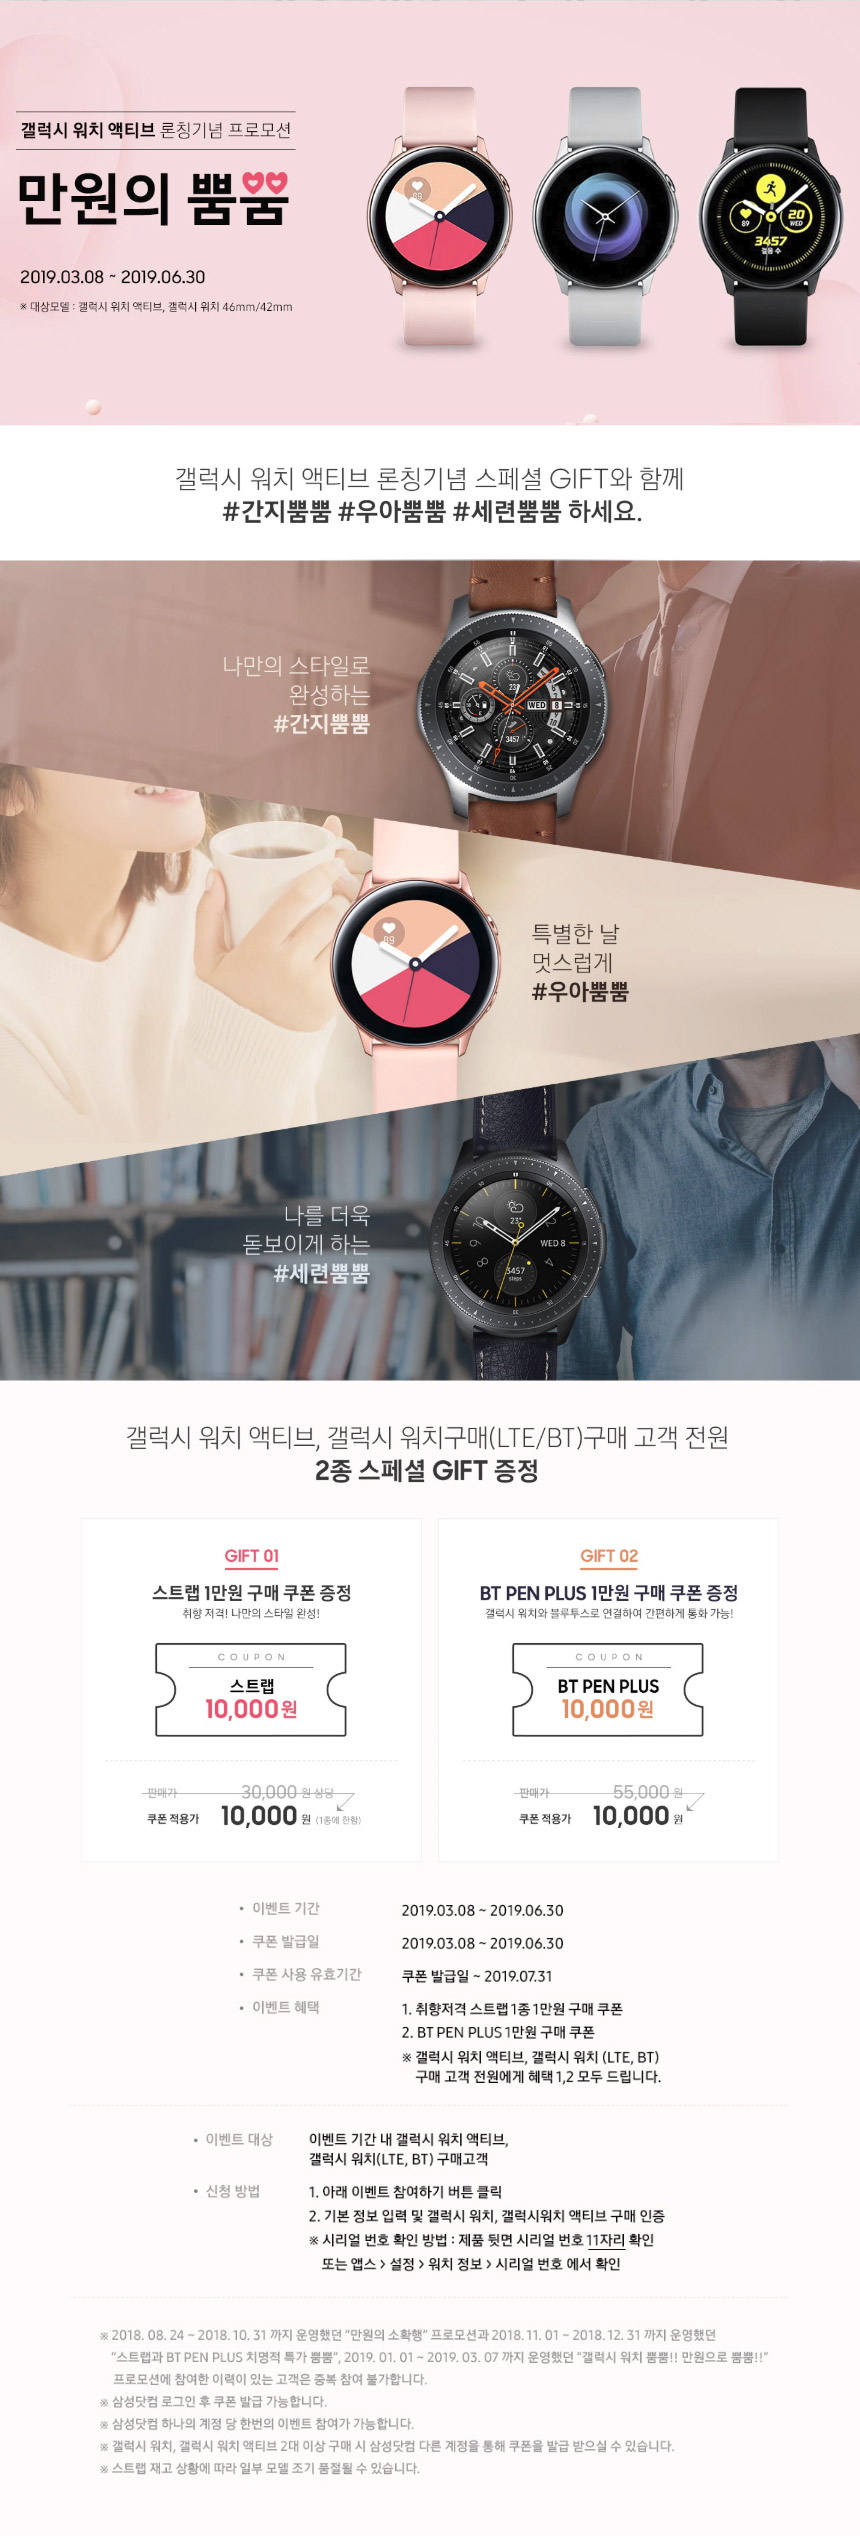 Watch_active_promotion_2(날짜-수정)